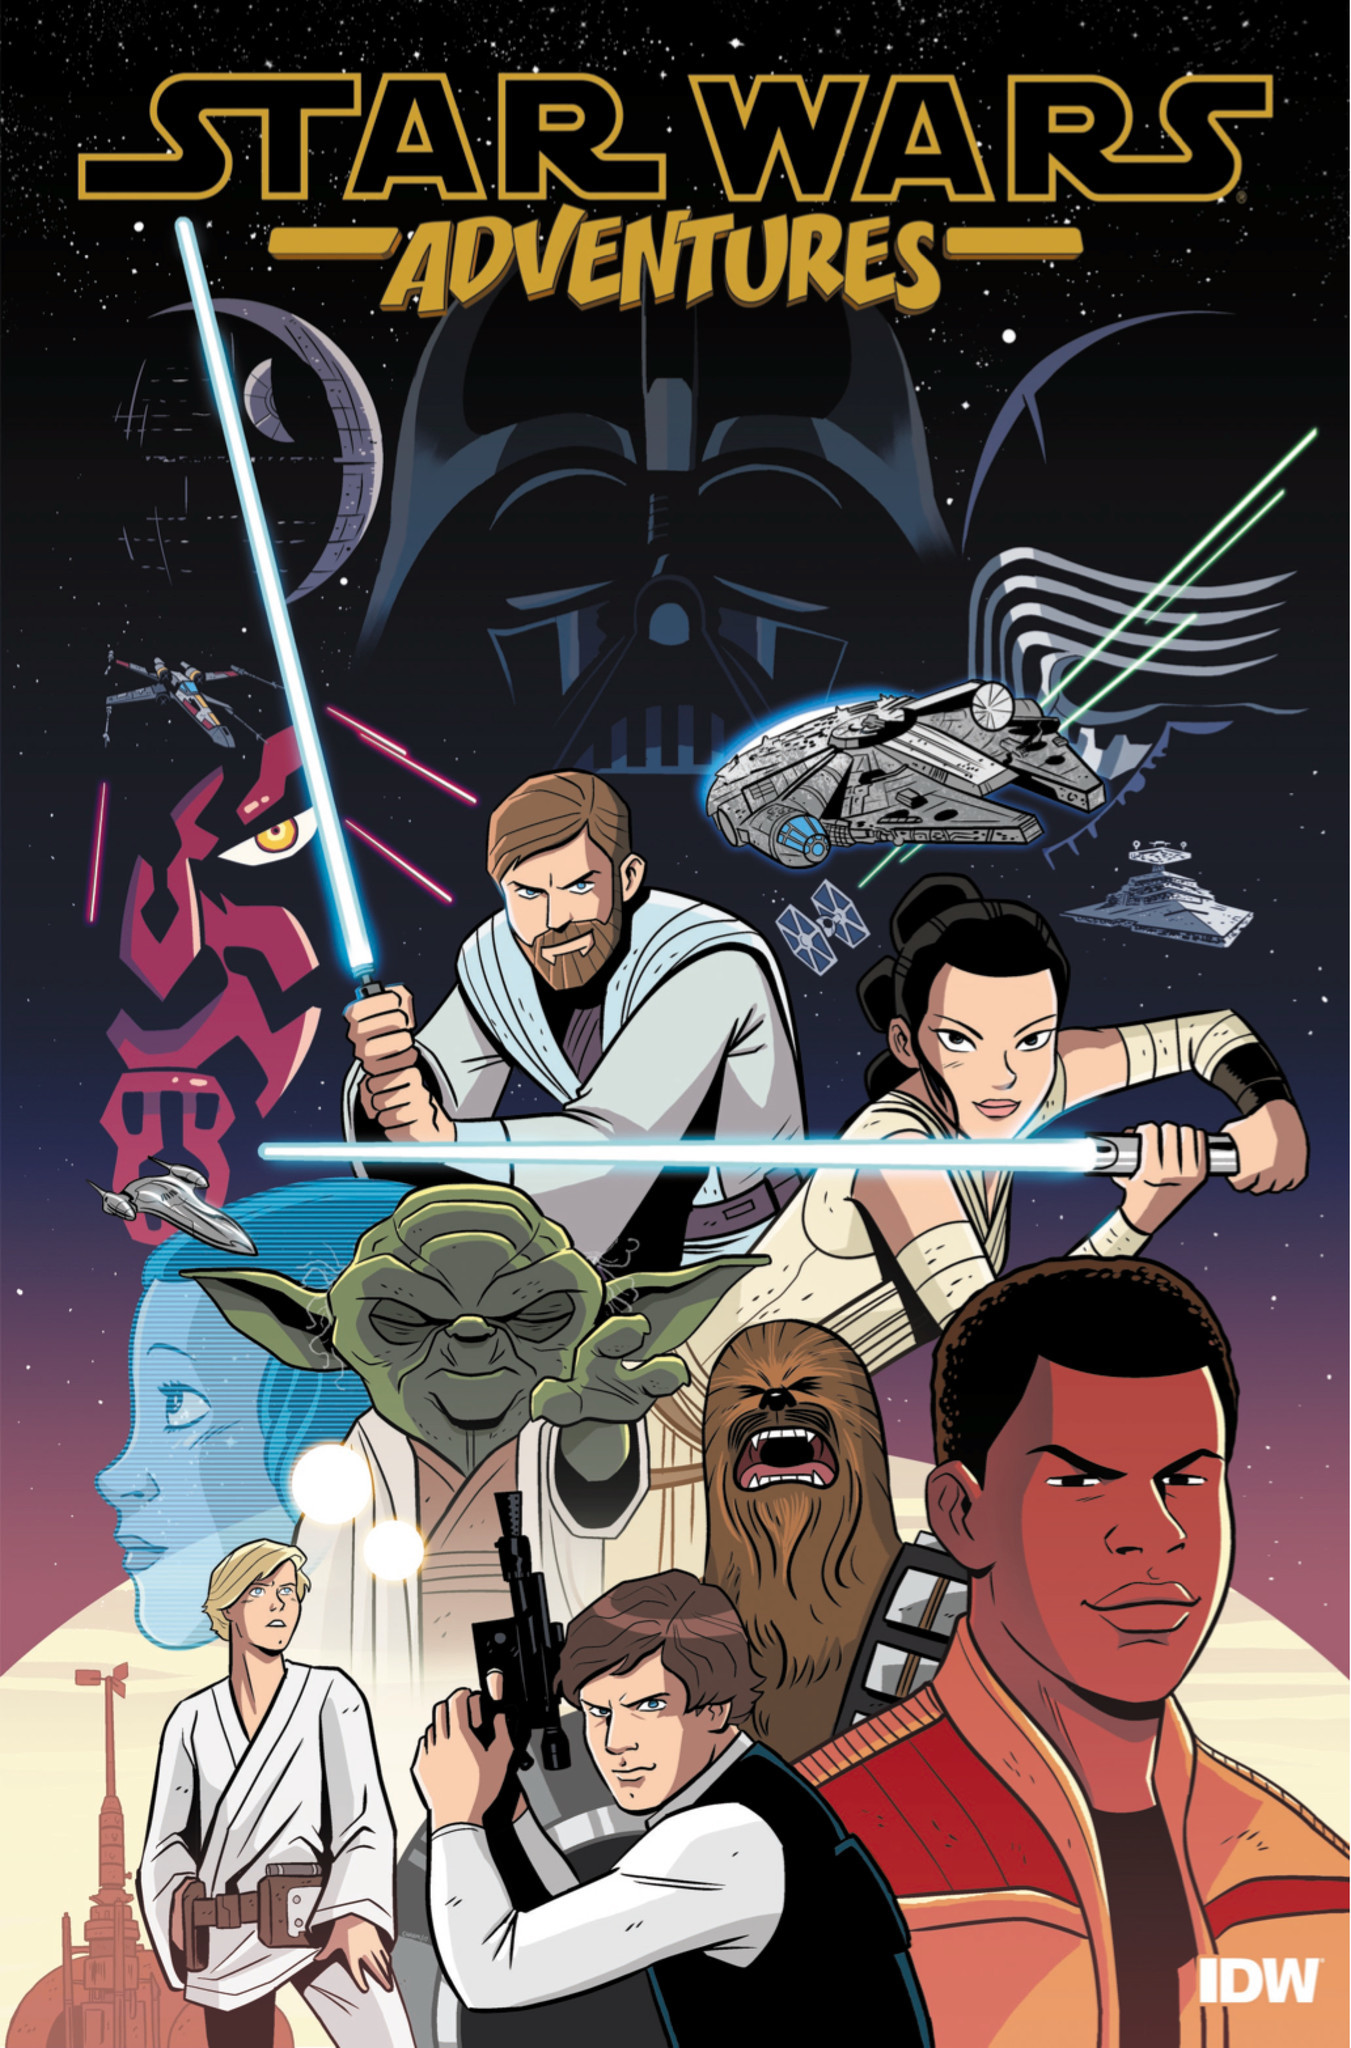 'Star Wars Adventures' teaser image.